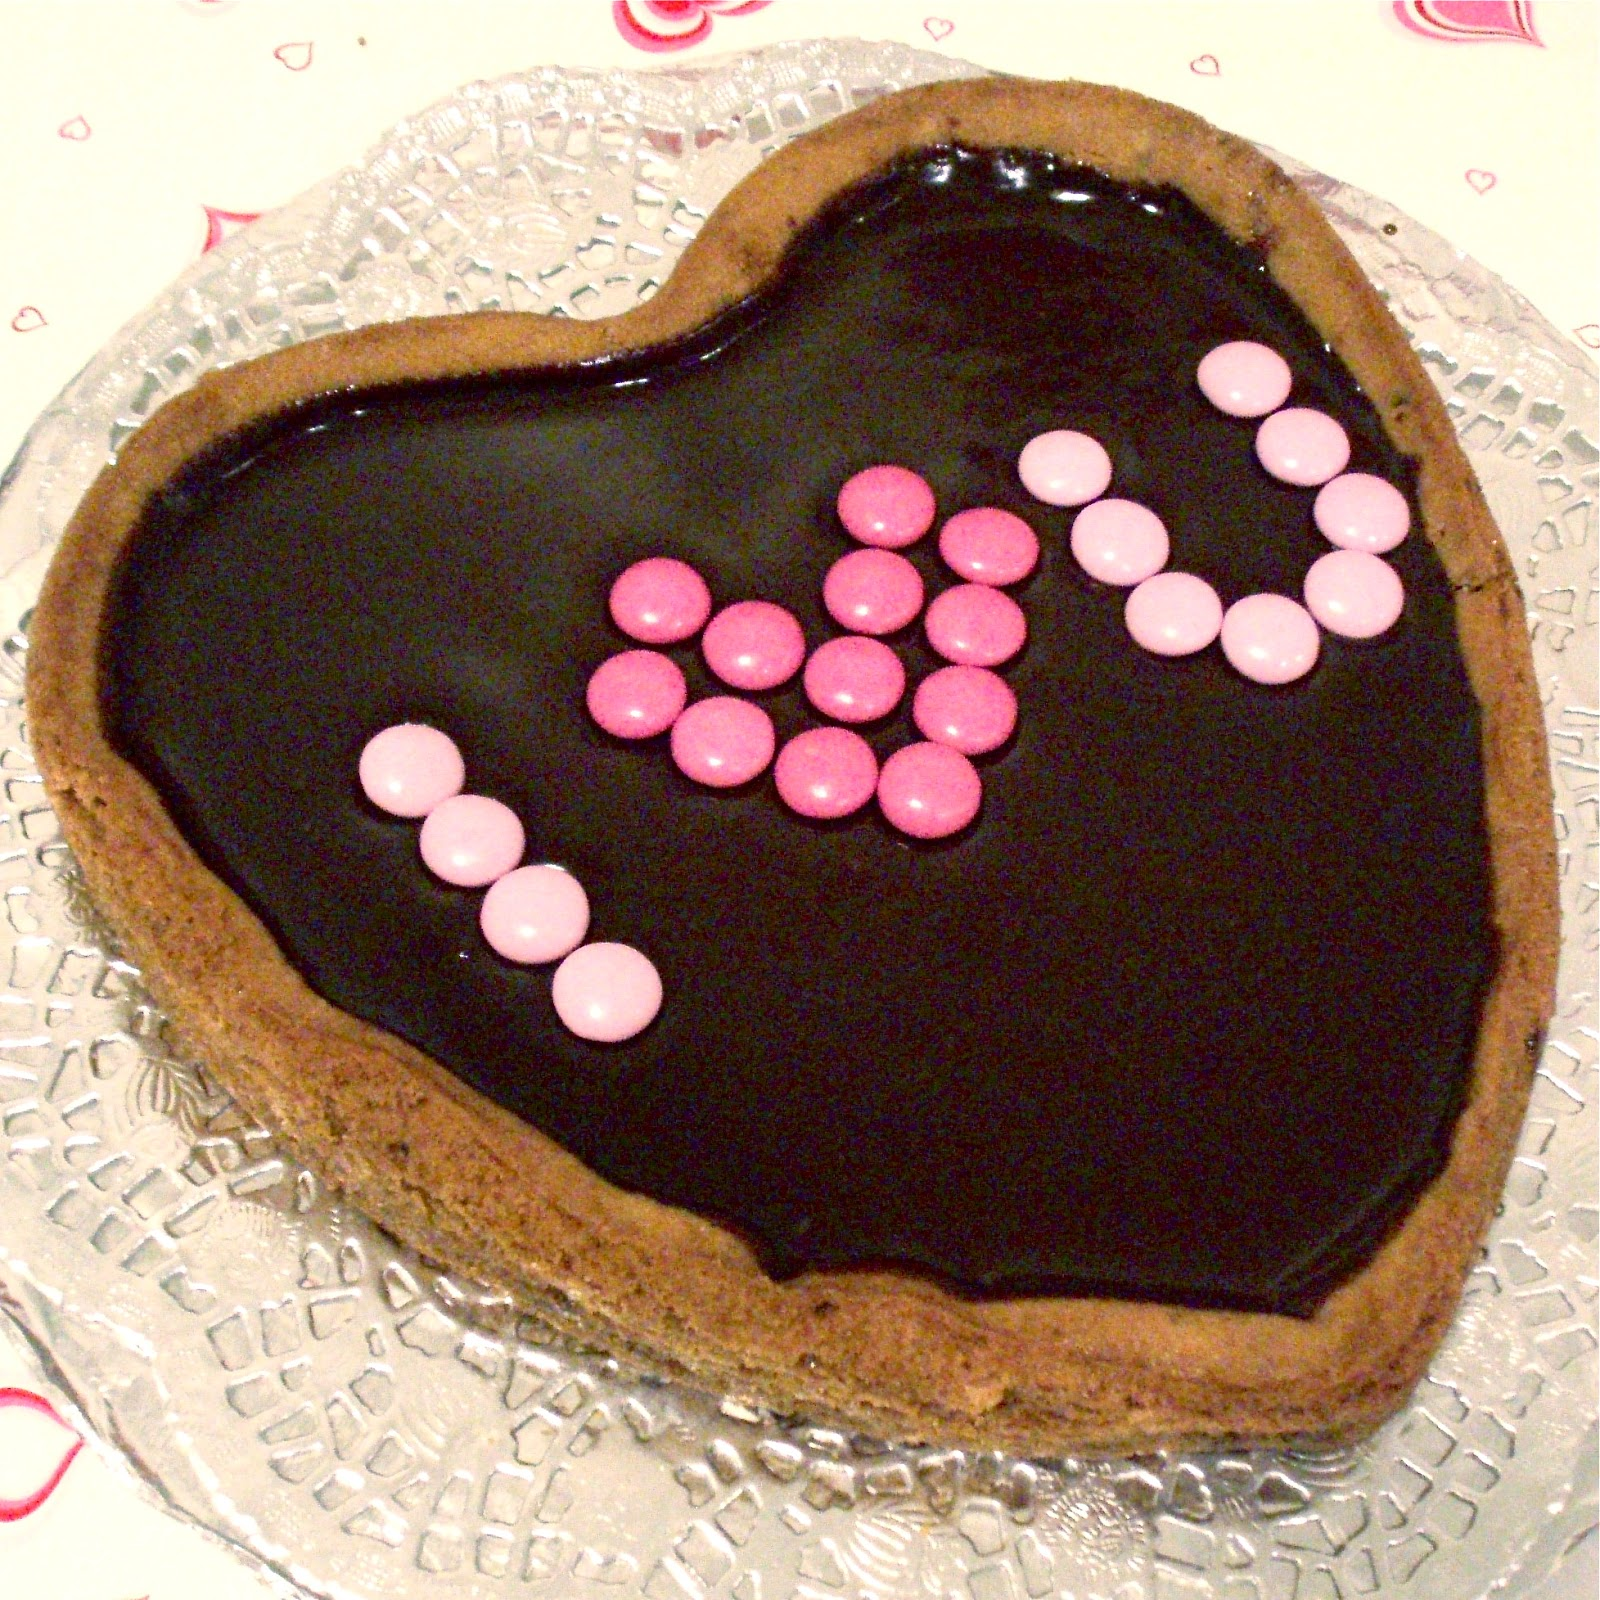 Giant Heart-Shaped Cookie Cake Topped with Fudgy Chocolate ...